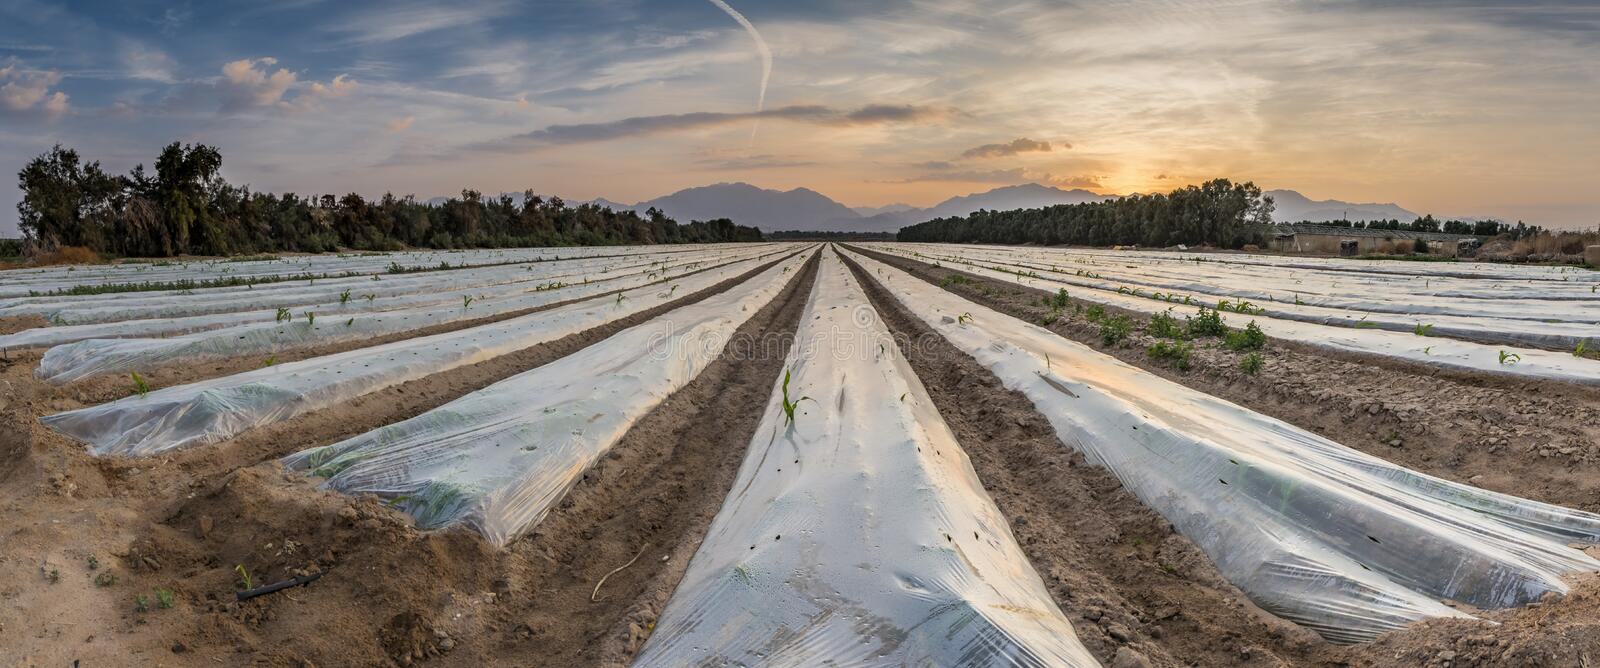 Field with cultured seeds in desert areas of the Middle East. Panoramic view on field with cultured seeds and young plants of corn covered by plastic film stock photography